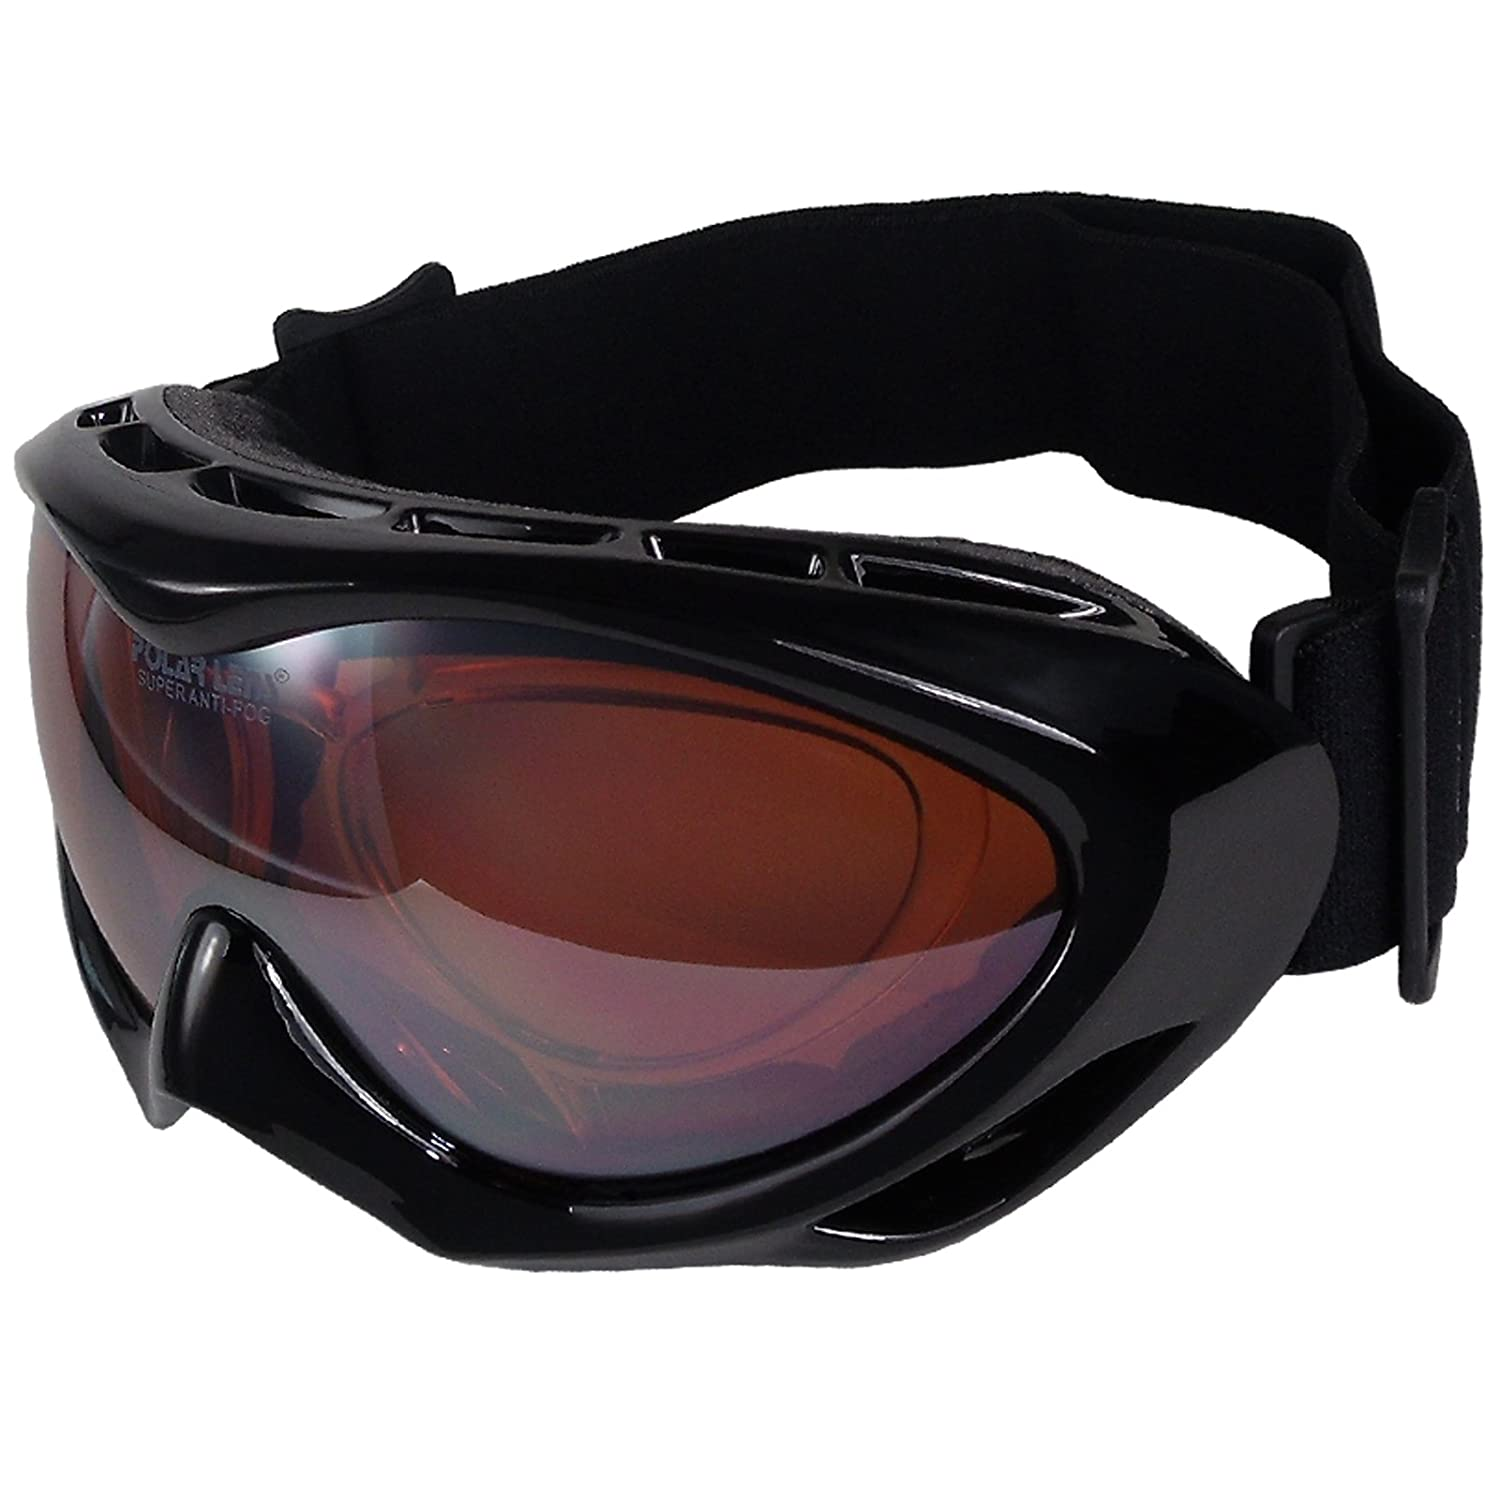 Polarlens PG25 Ski Goggles / Snowboard Goggles / Sunglasses with correction for frame glasses + Cleaning Pouch